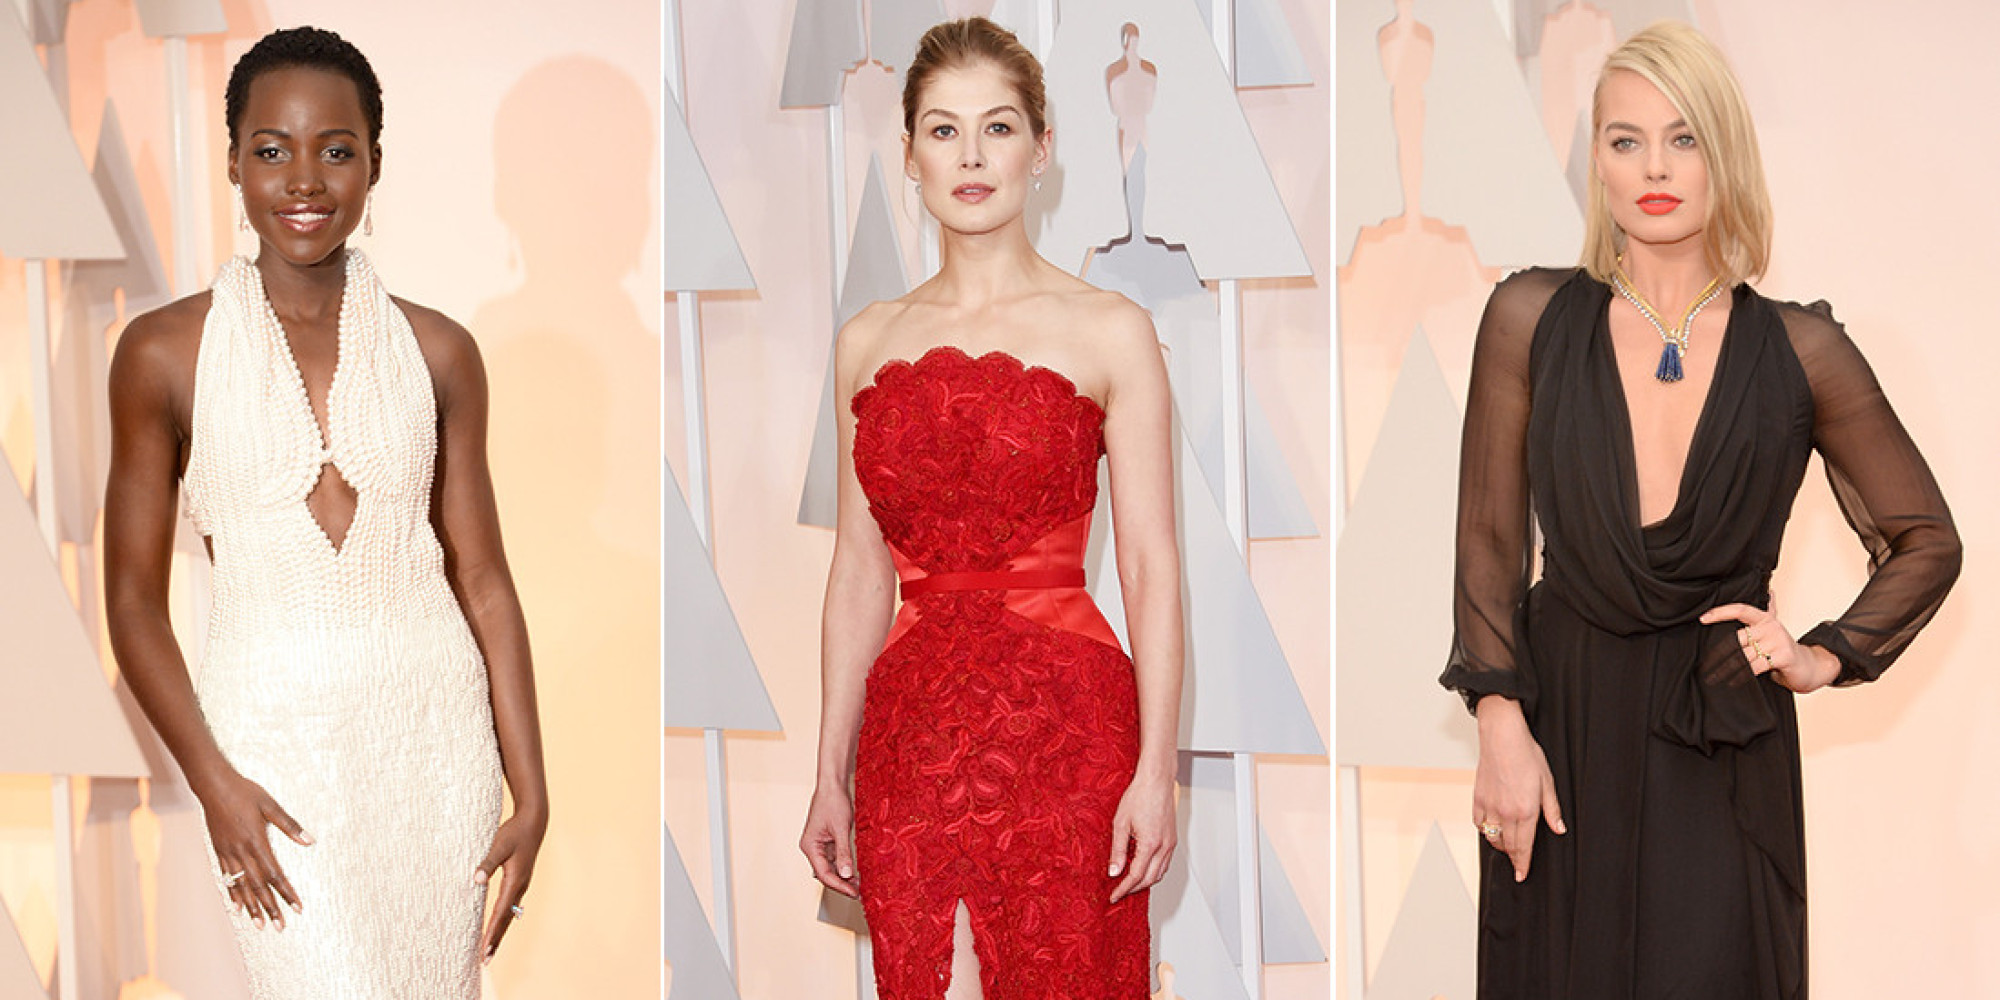 Oscars 2015 red carpet see all the gorgeous gowns from the academy awards huffpost - Red carpet oscar dresses ...